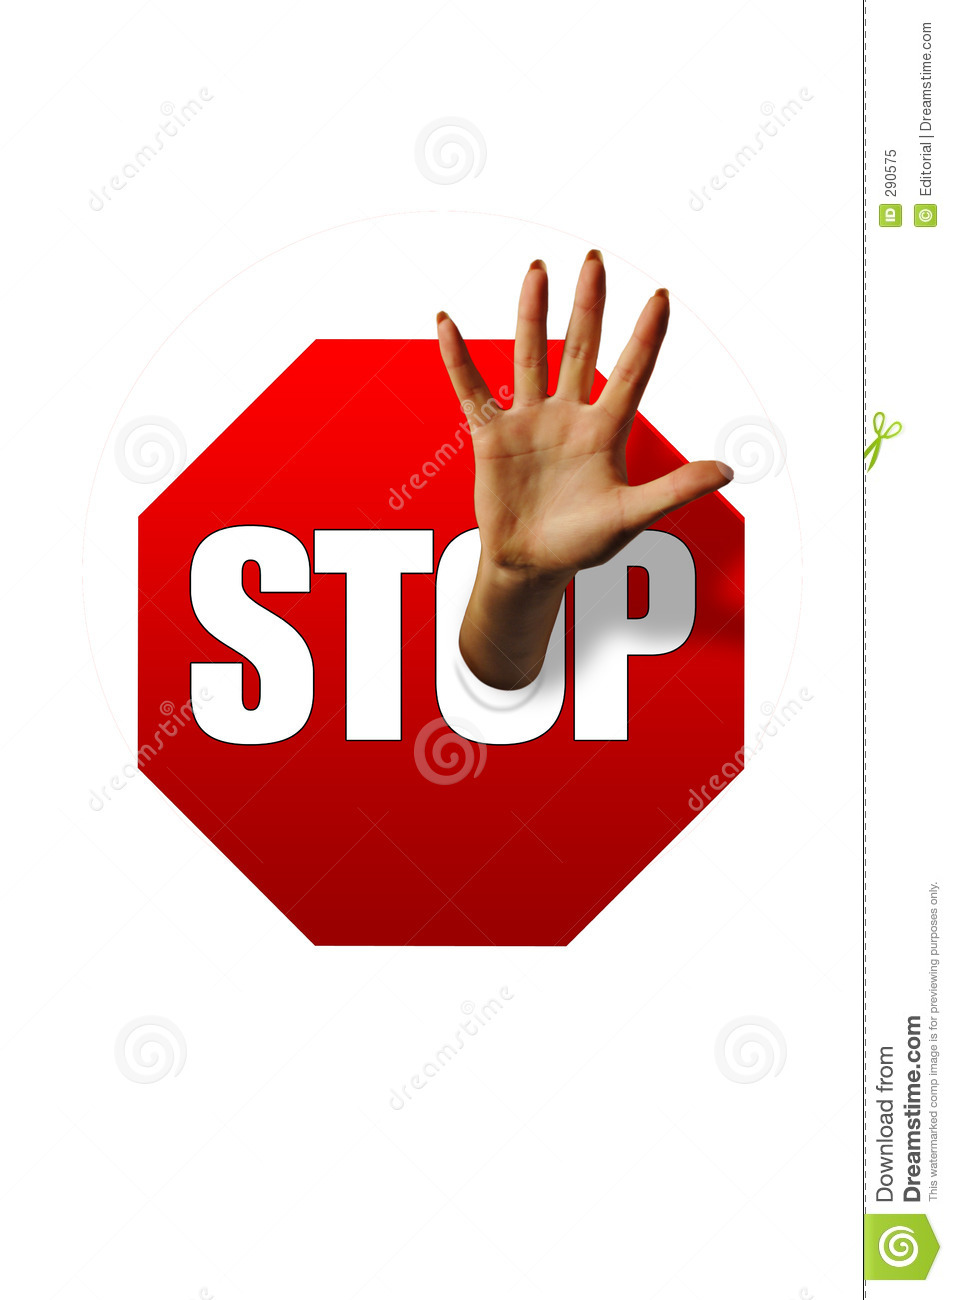 Royalty Free Stock Photo Stop Sign And Hand Image 290575